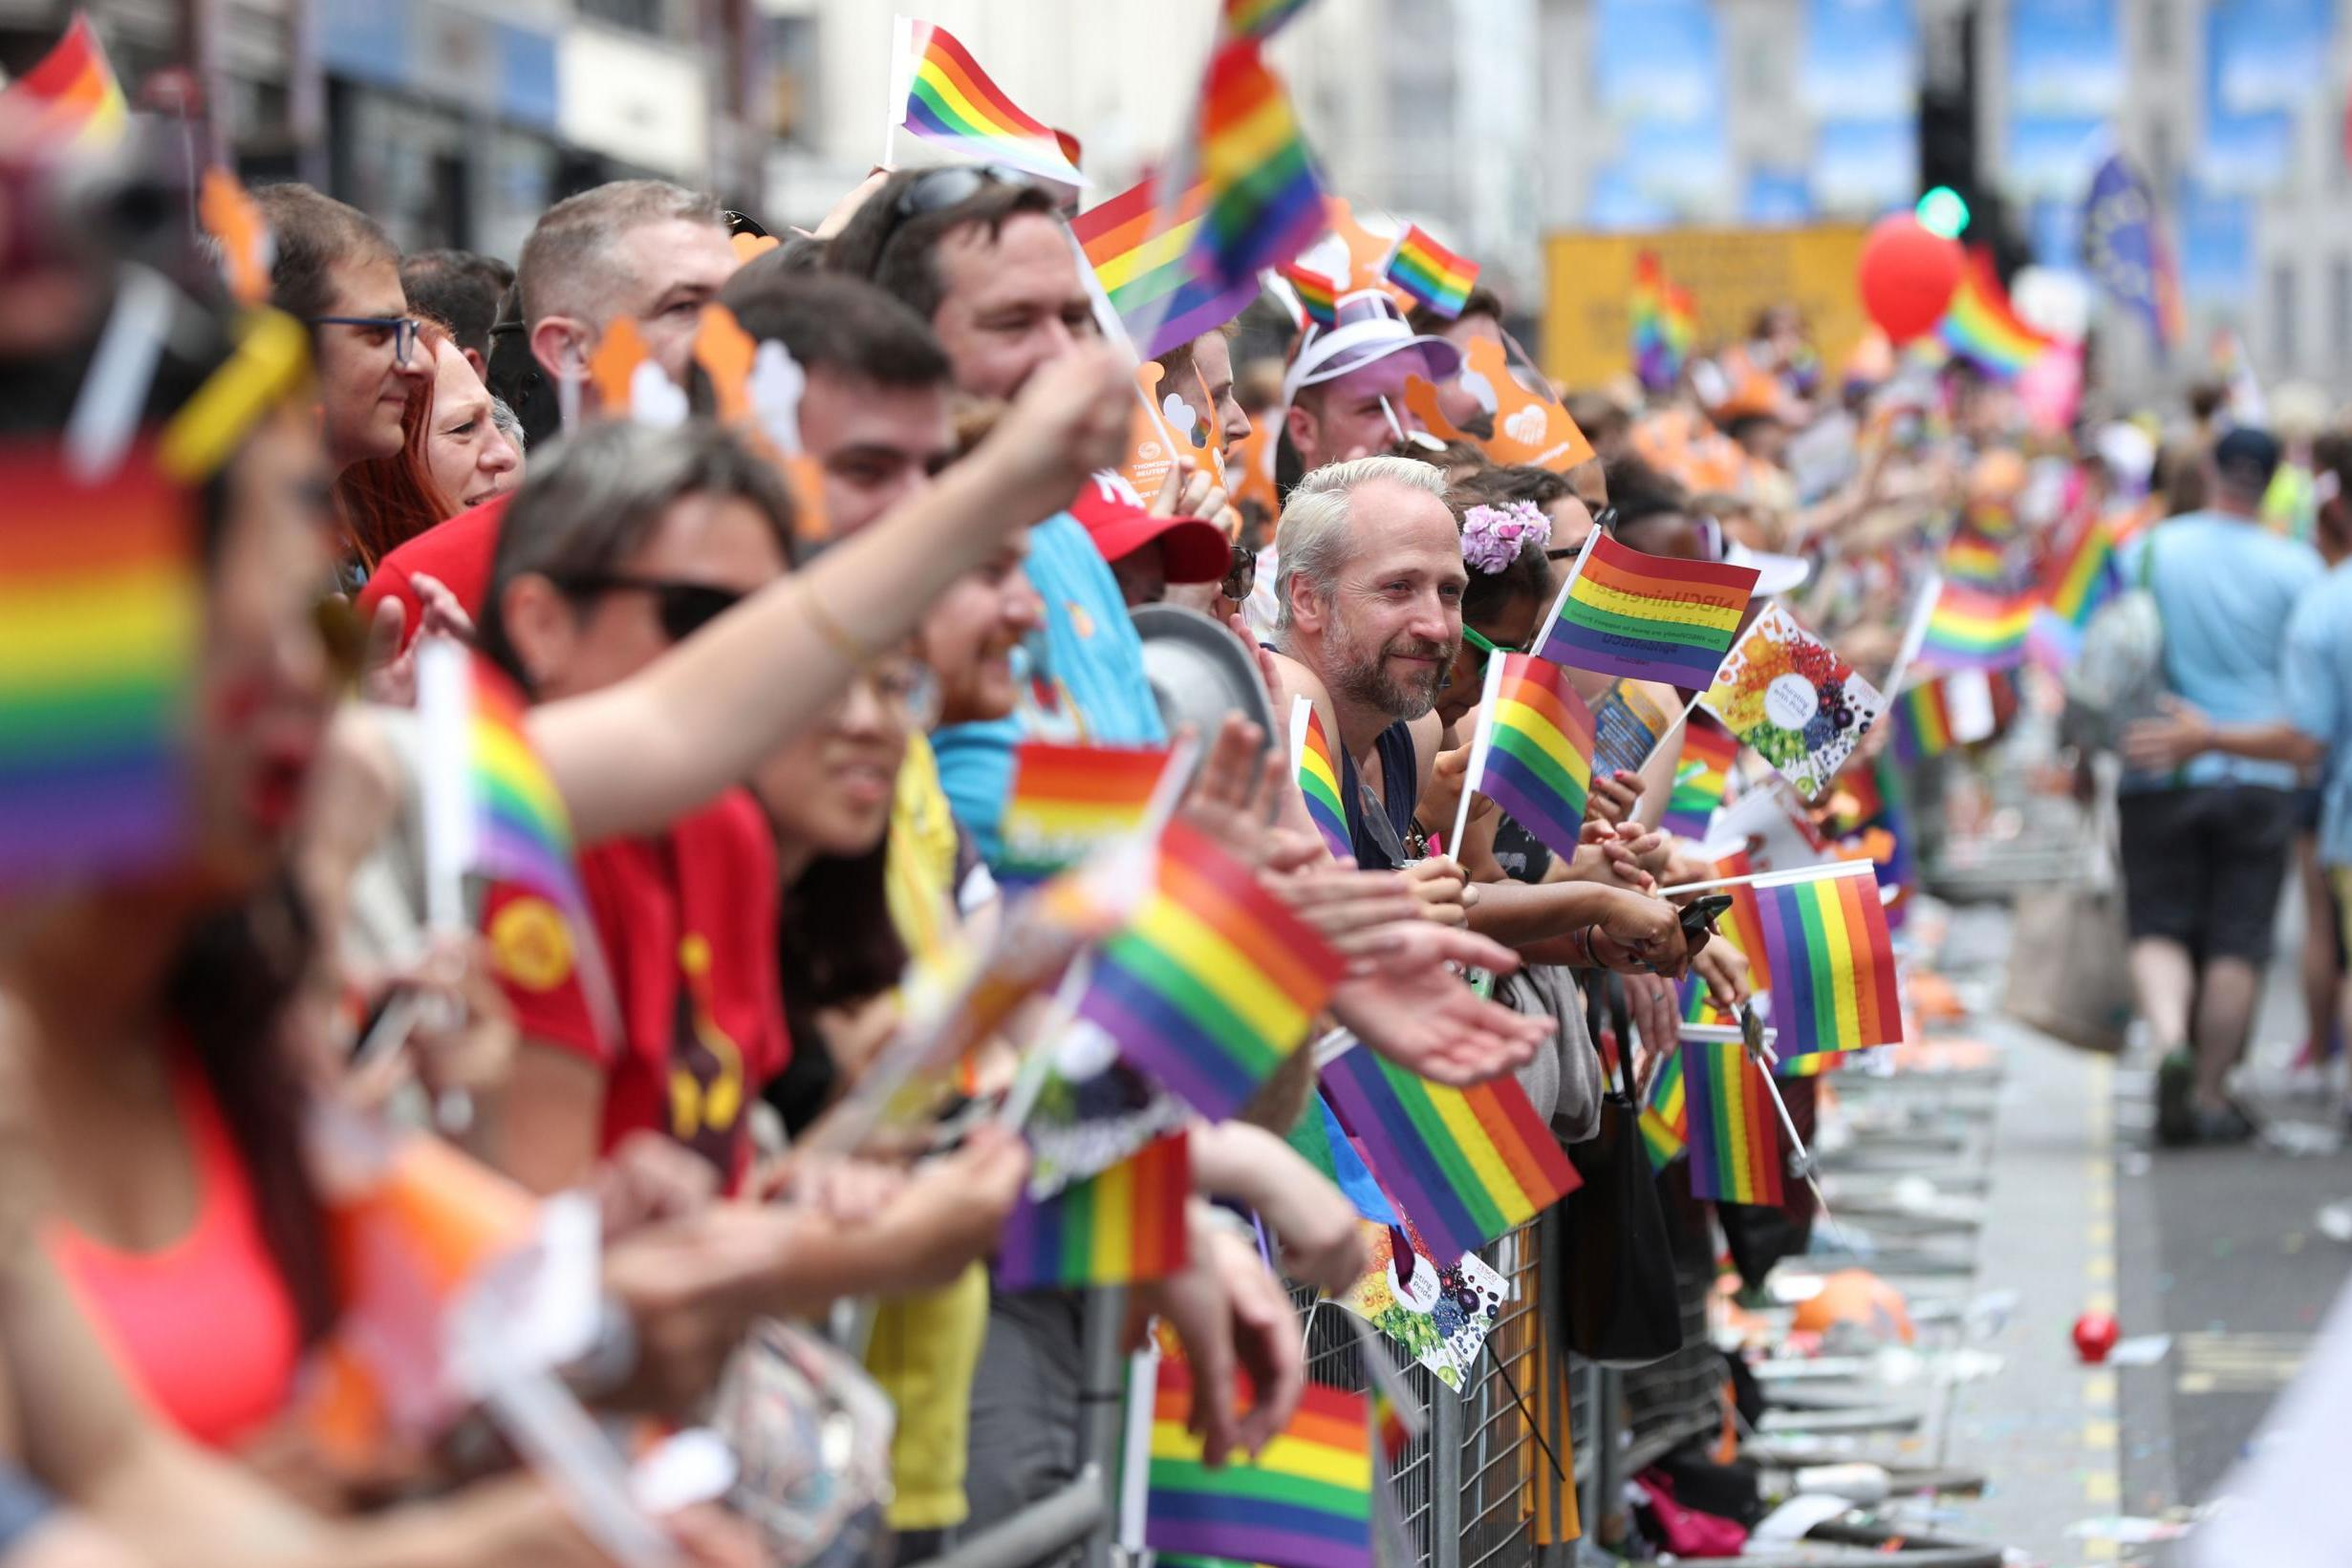 出典: https://www.standard.co.uk/news/uk/london-pride-2019-15-million-people-to-descend-on-capital-for-biggest-ever-parade-a4183751.html